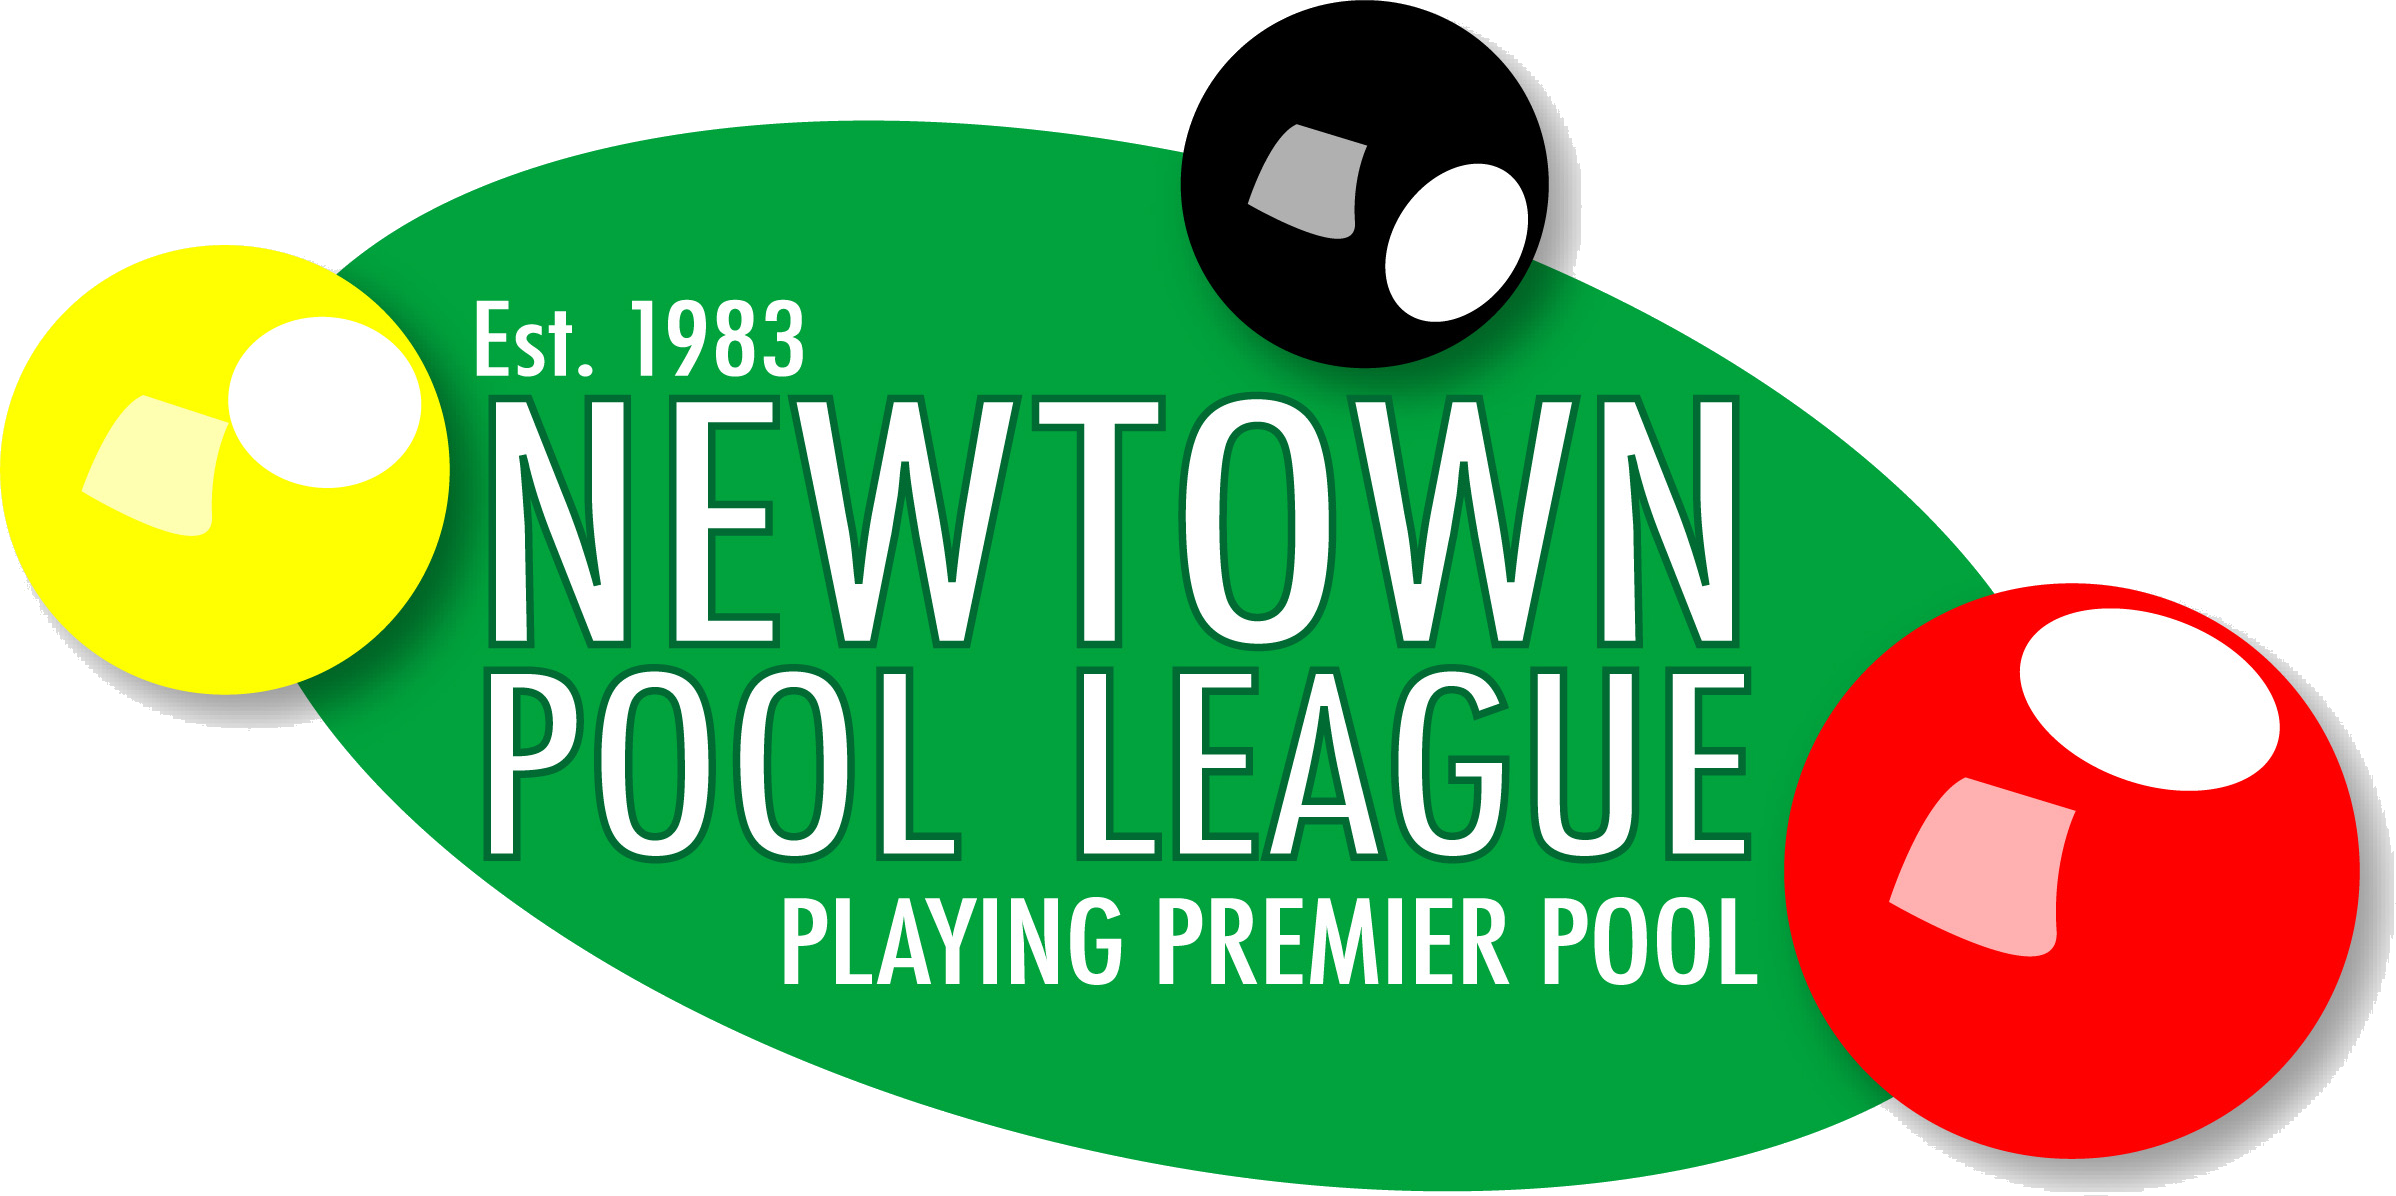 Newtown Pool League